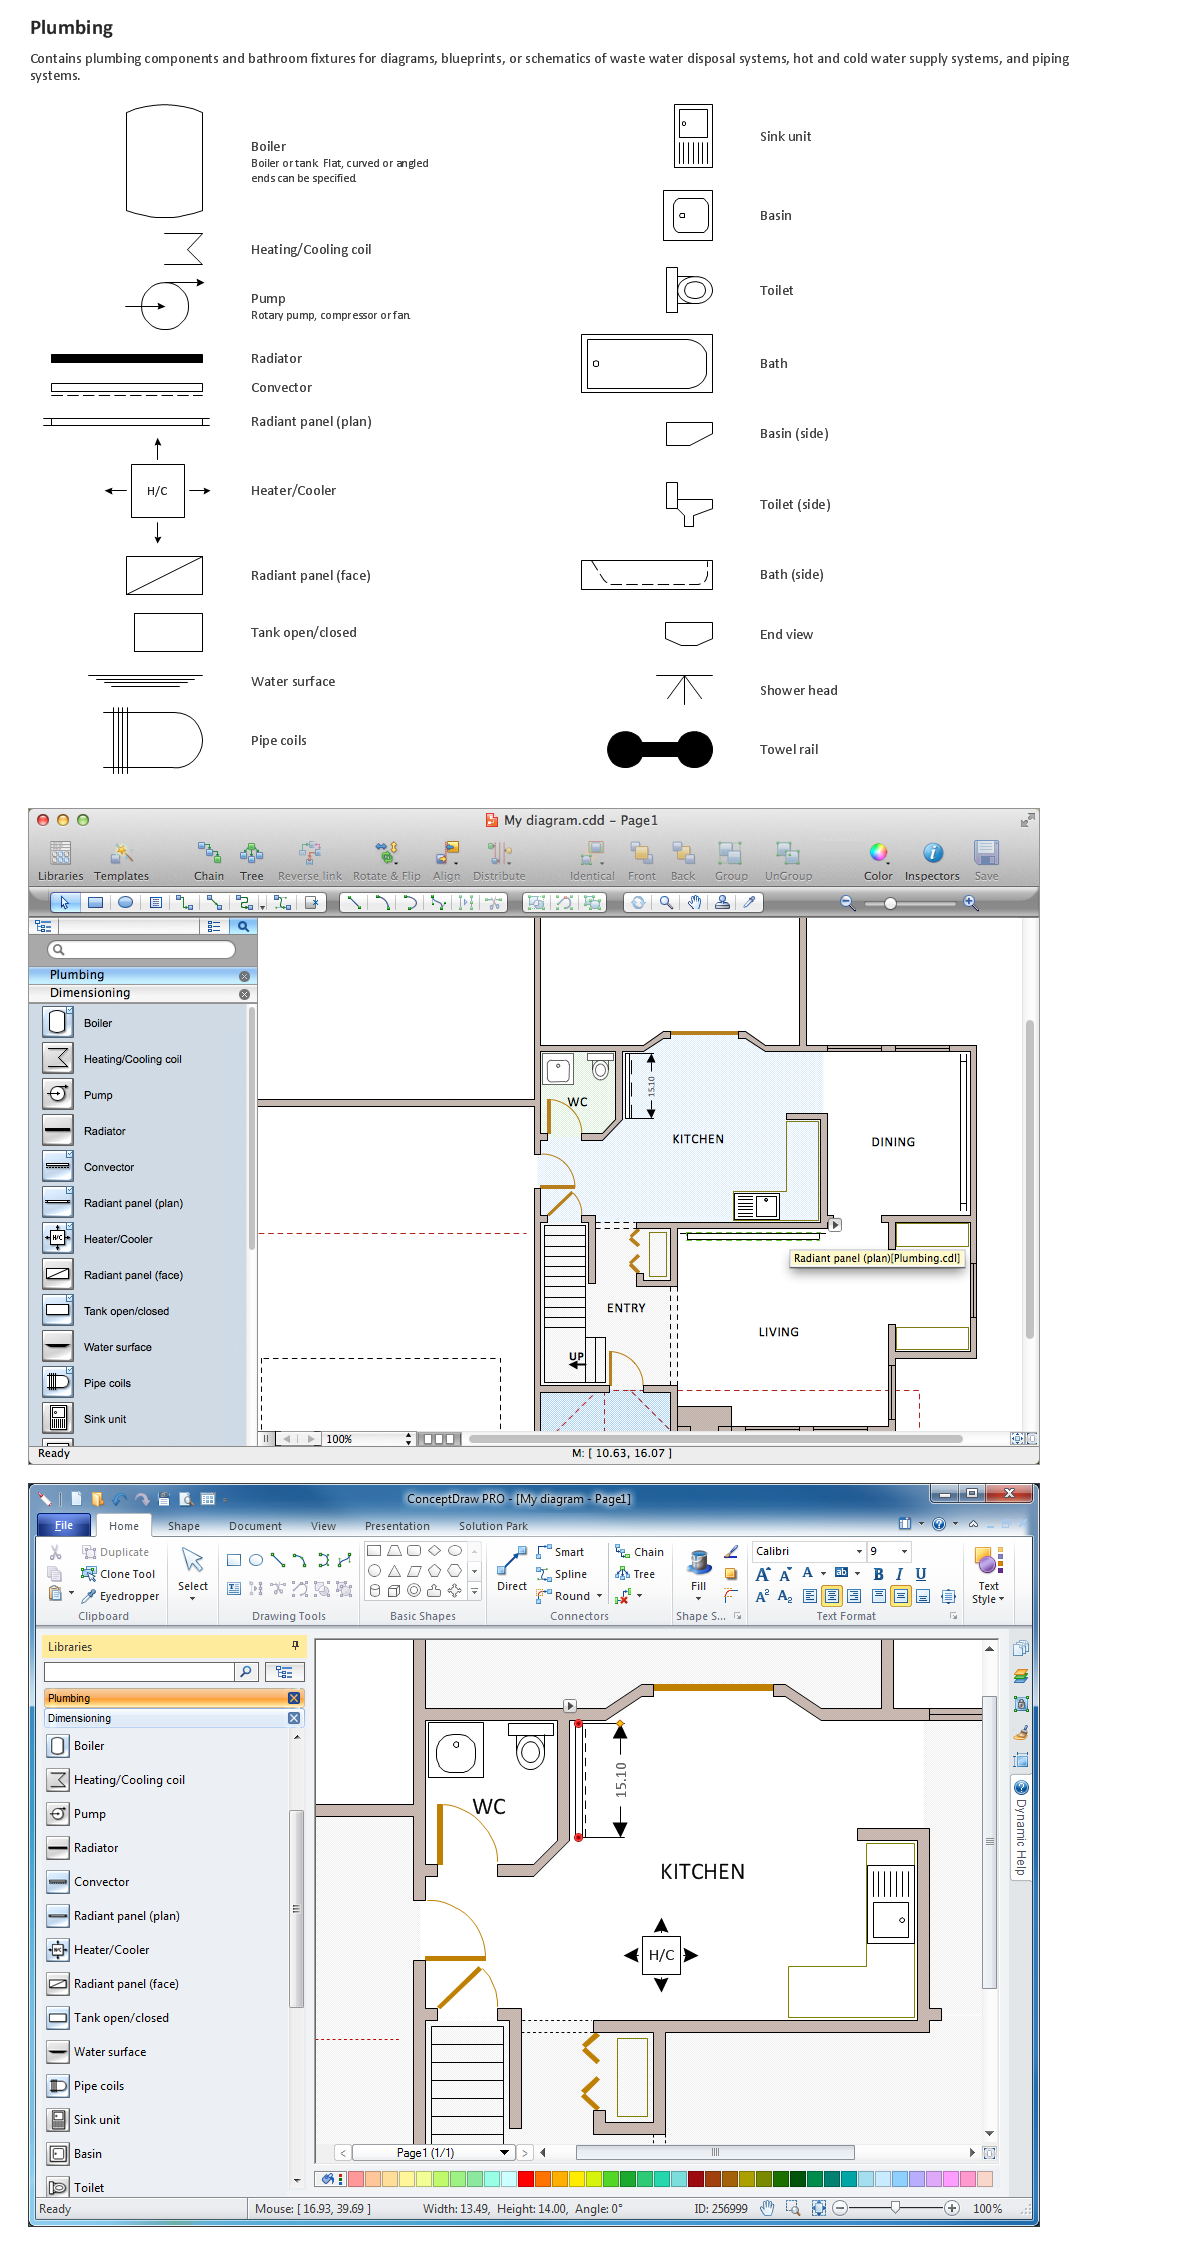 25 References Of Plumbing Diagram Software Technique Http Bookingritzcarlton Info 25 References Of Plumbing Diagram Sof Electrical Plan Plumbing How To Plan